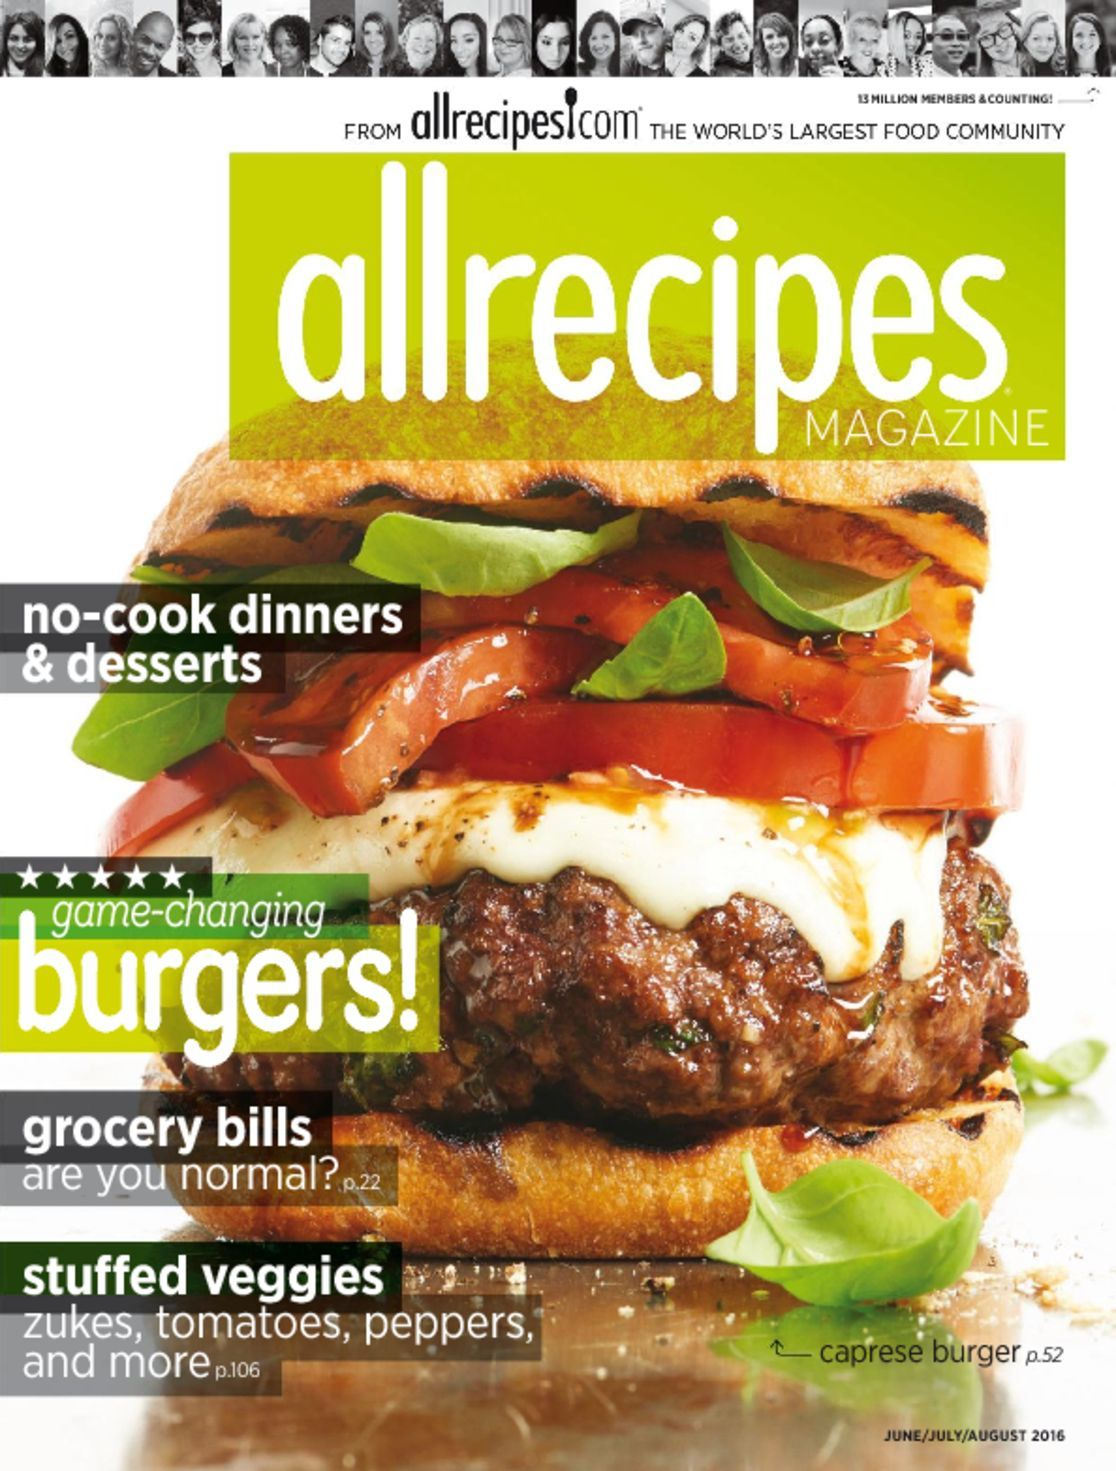 Allrecipes Magazine | Tried-and-True Recipes - DiscountMags.com